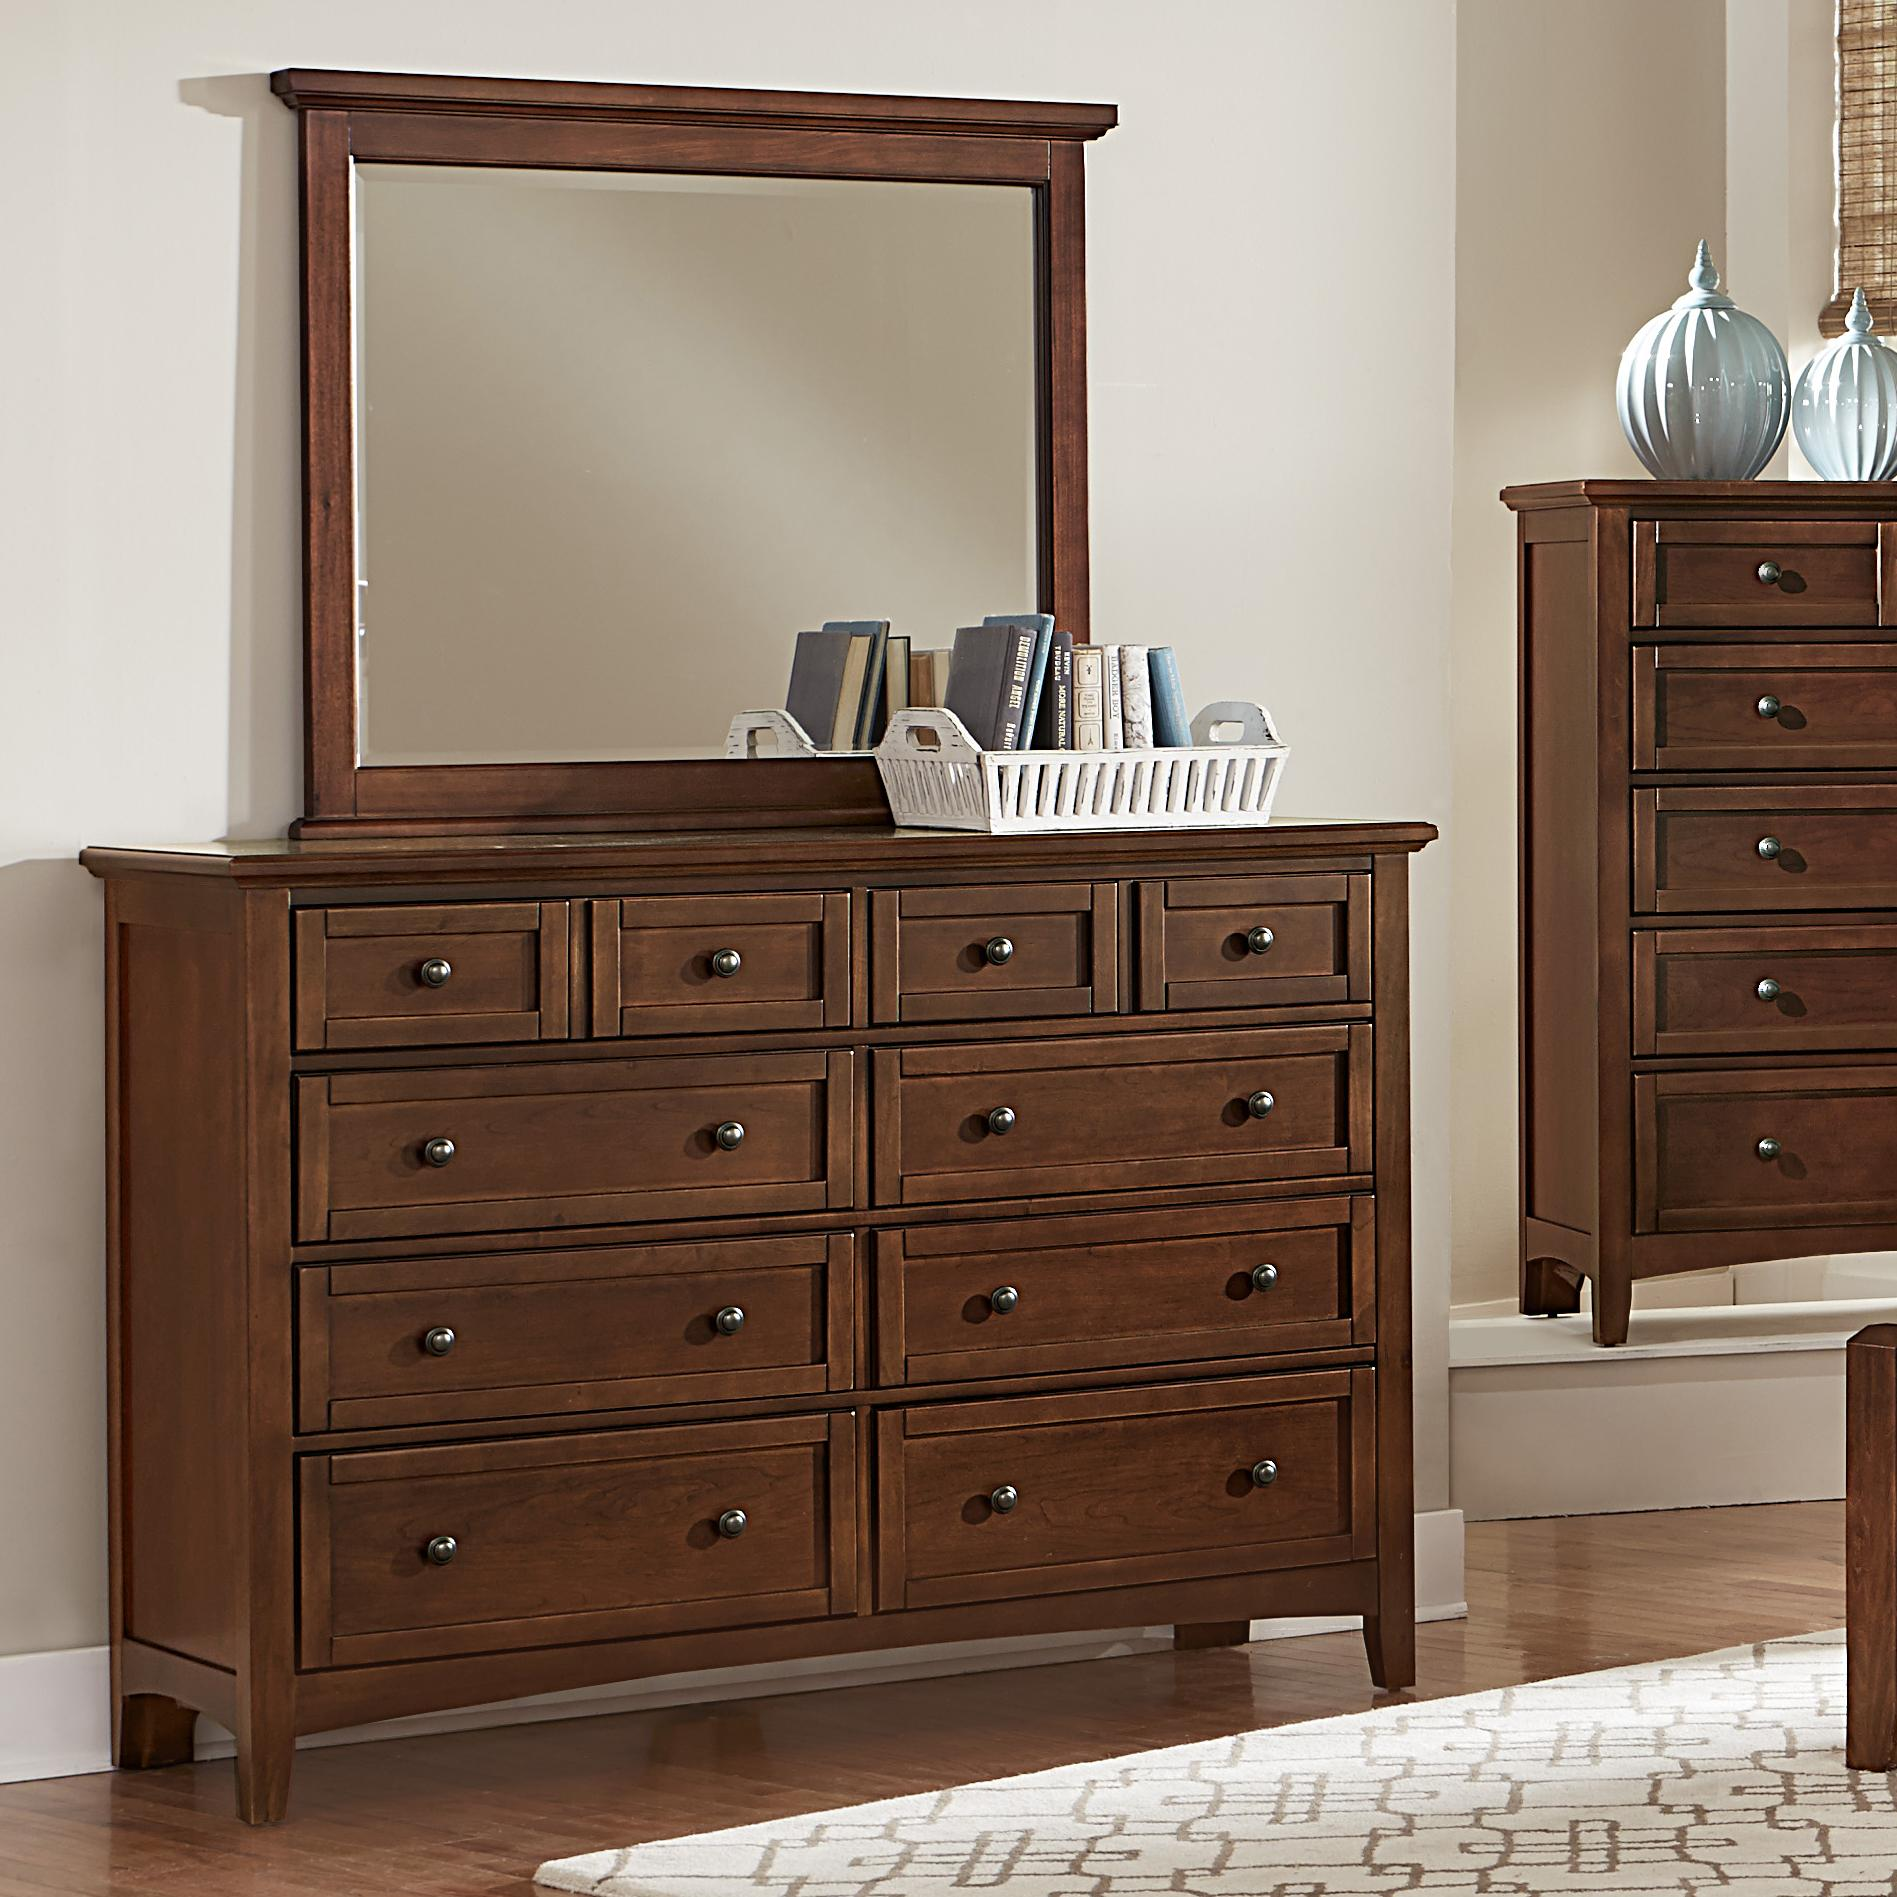 Bonanza Triple Dresser & Landscape Mirror by Vaughan Bassett at Northeast Factory Direct